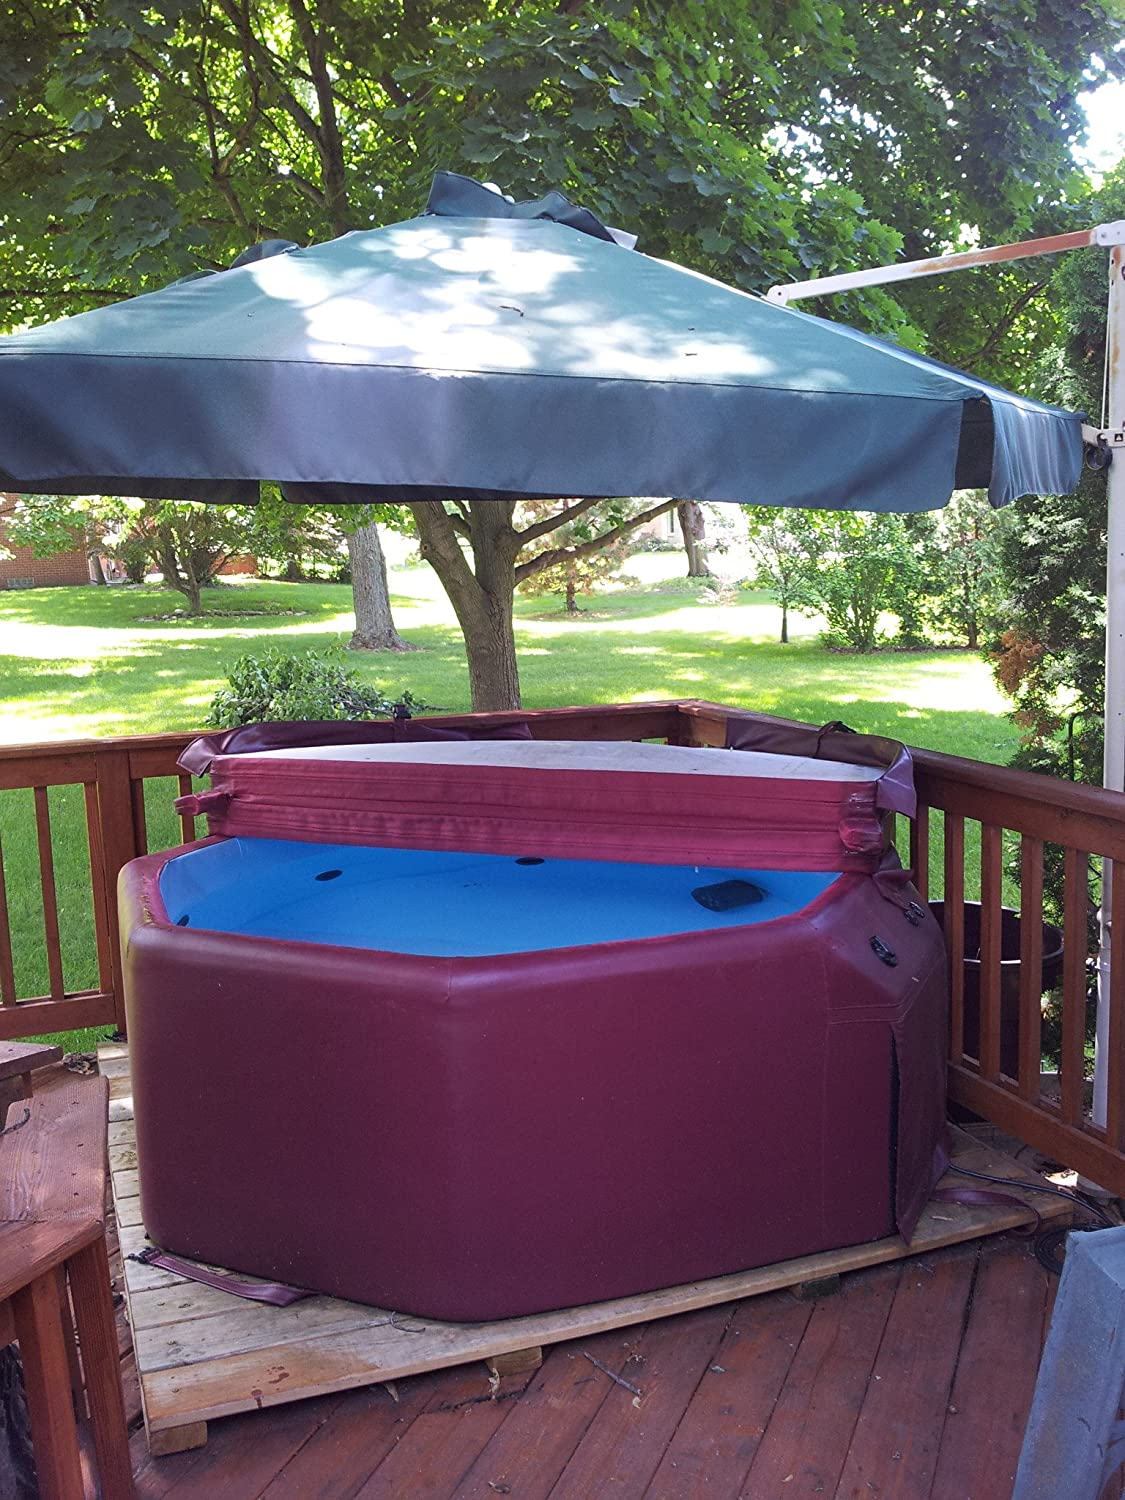 a spares p softub hot with and motor other of new tub mocha person lots goods miscellaneous soft